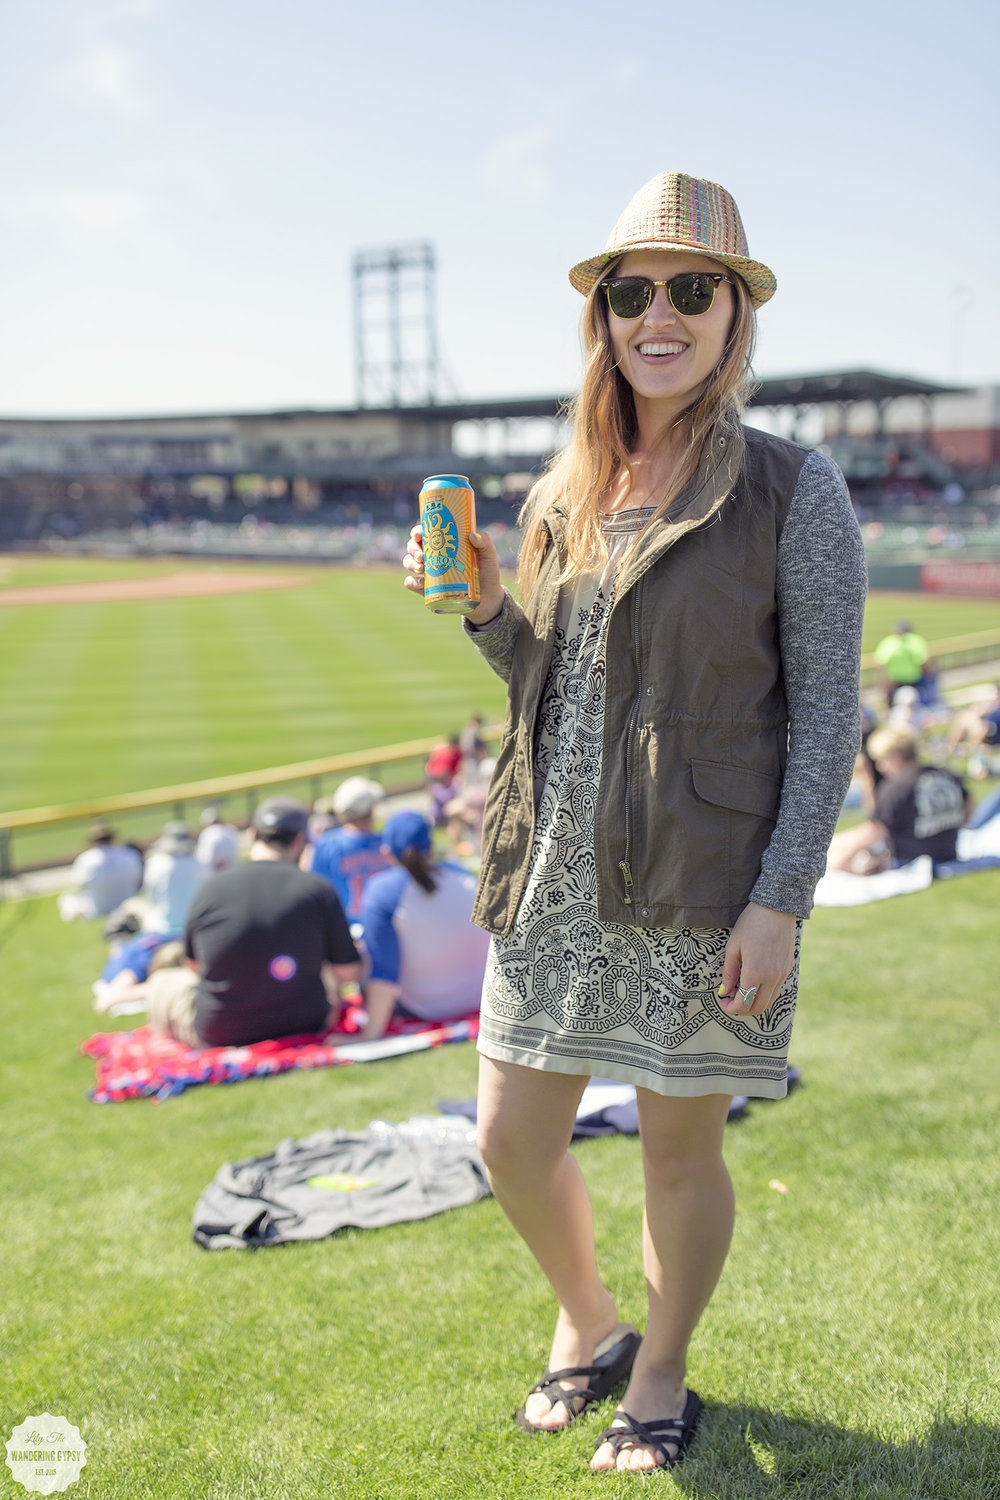 Cubs Spring Training - Mesa AZ - Lily The Wandering Gypsy